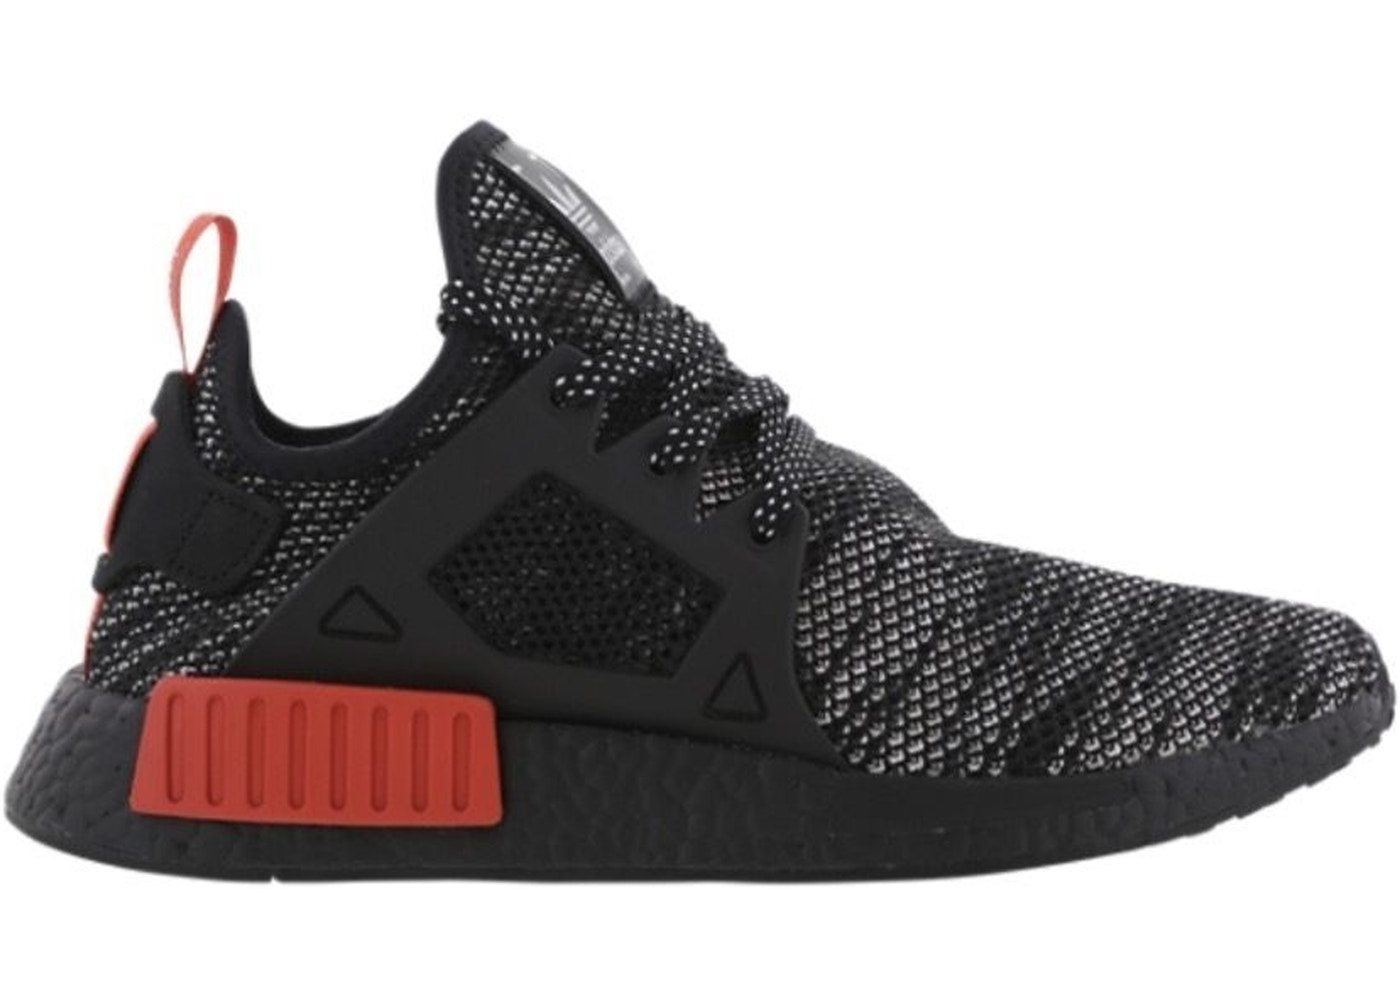 reputable site f8e20 95676 Buy adidas NMD XR1 Shoes & Deadstock Sneakers